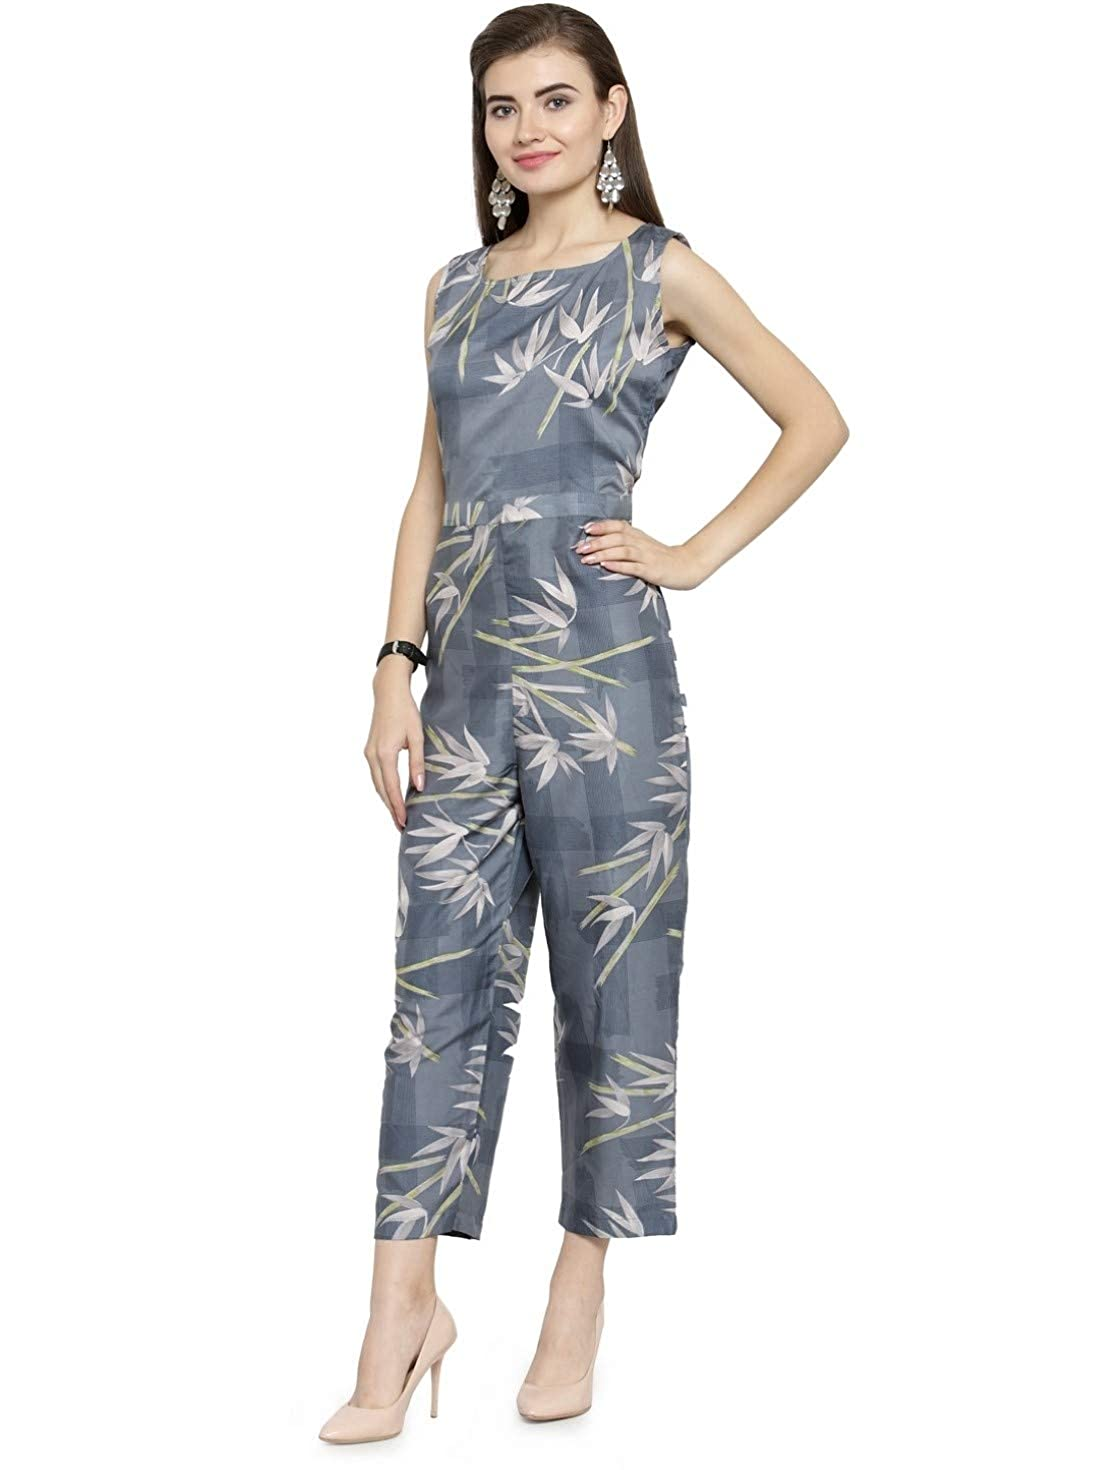 a16b7176ae2 Enchanted Drapes Women s Grey Blue Crepe Jumpsuit  Amazon.in  Clothing    Accessories